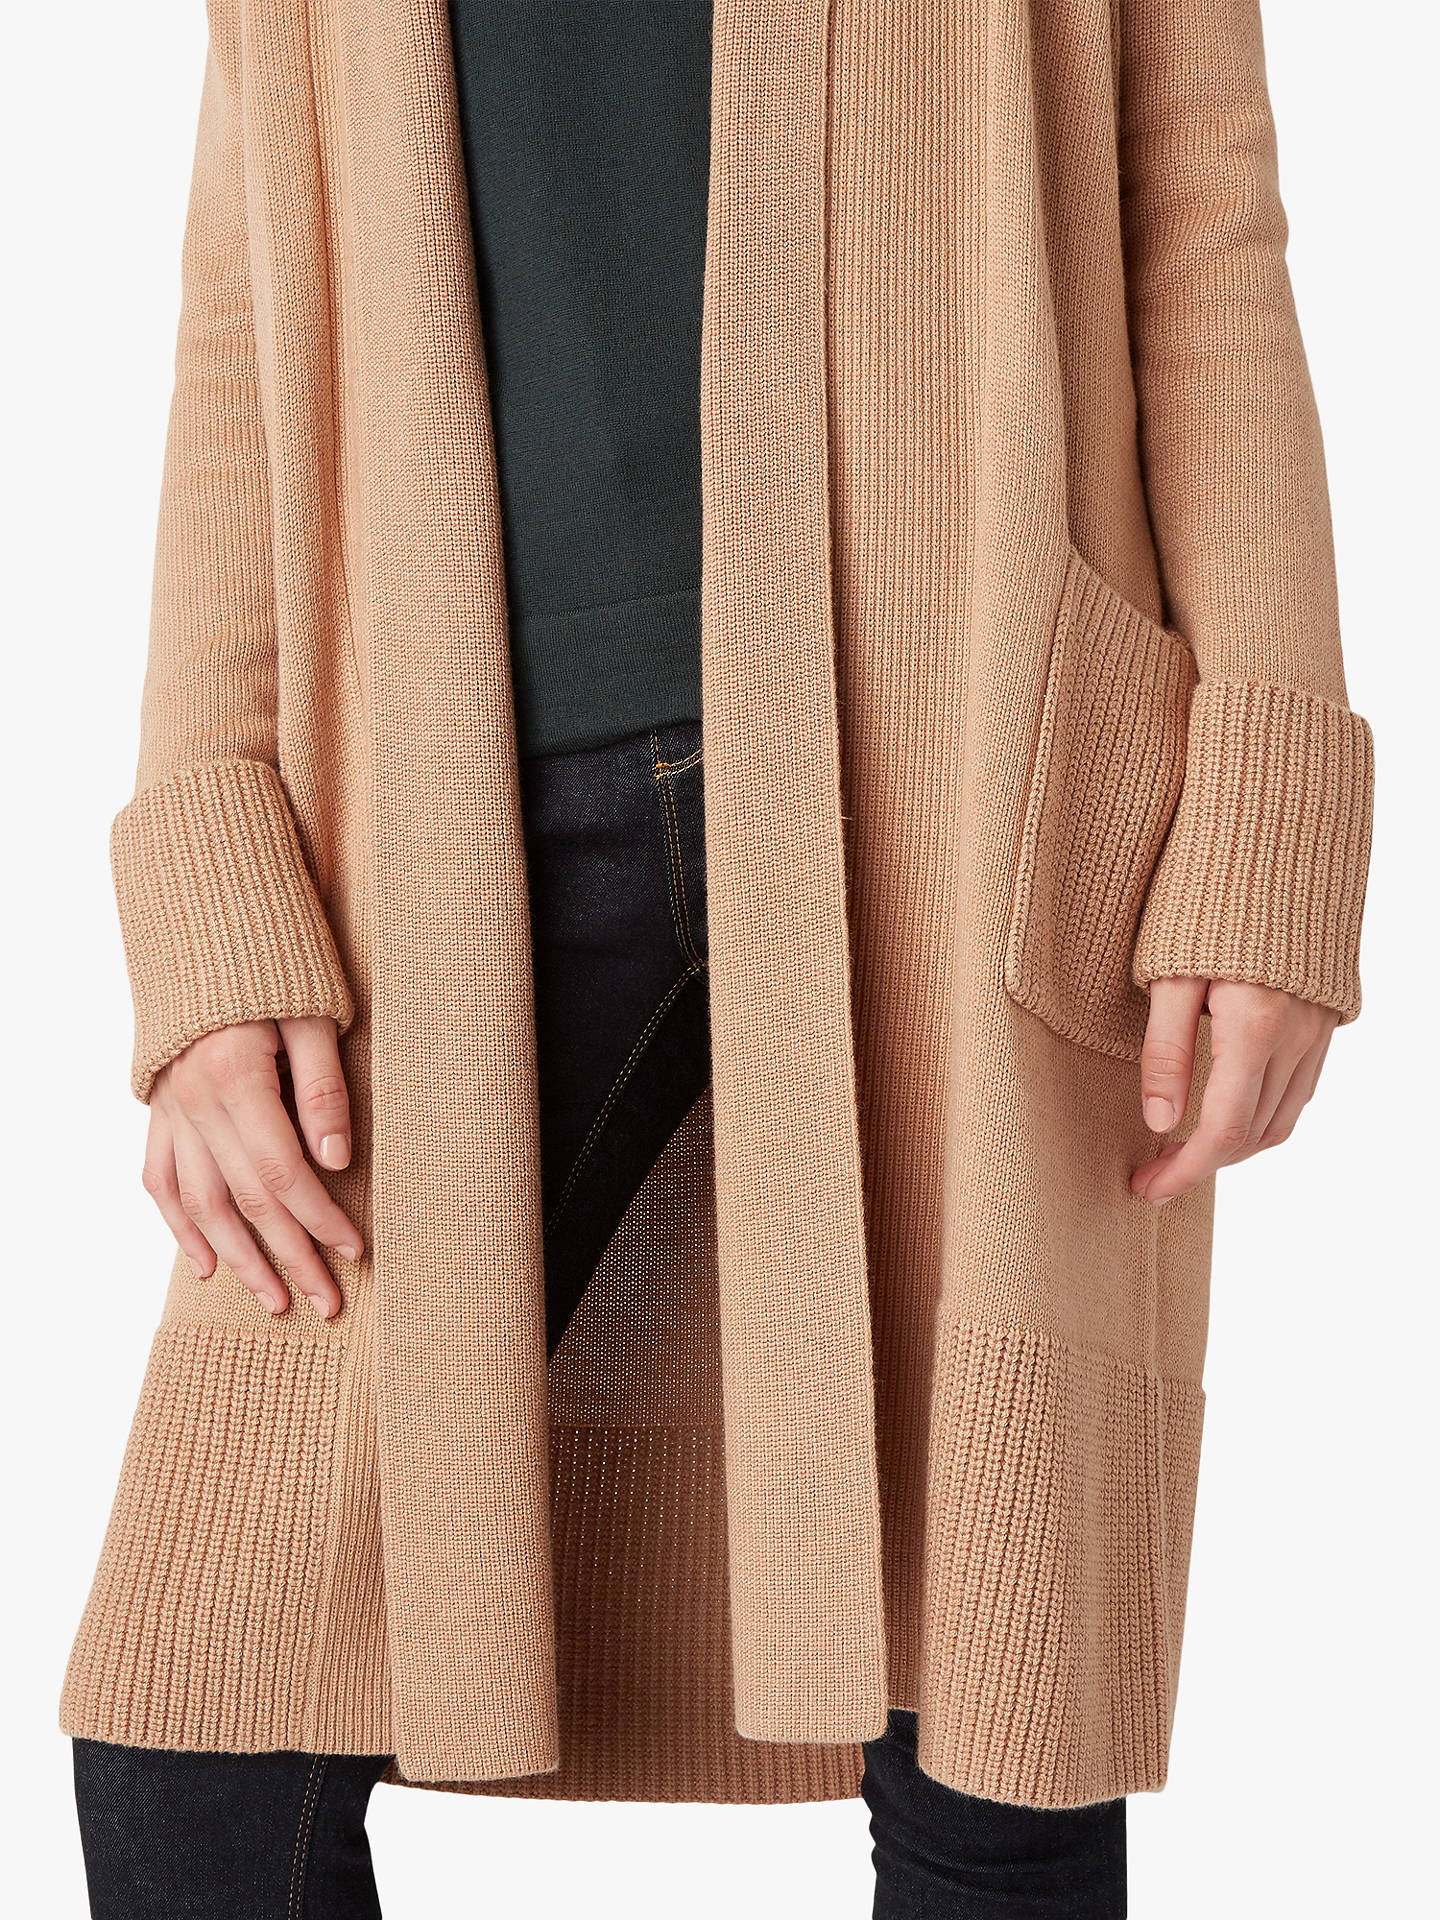 Buy Hobbs Lottie Knit Cardigan, Camel, XS Online at johnlewis.com